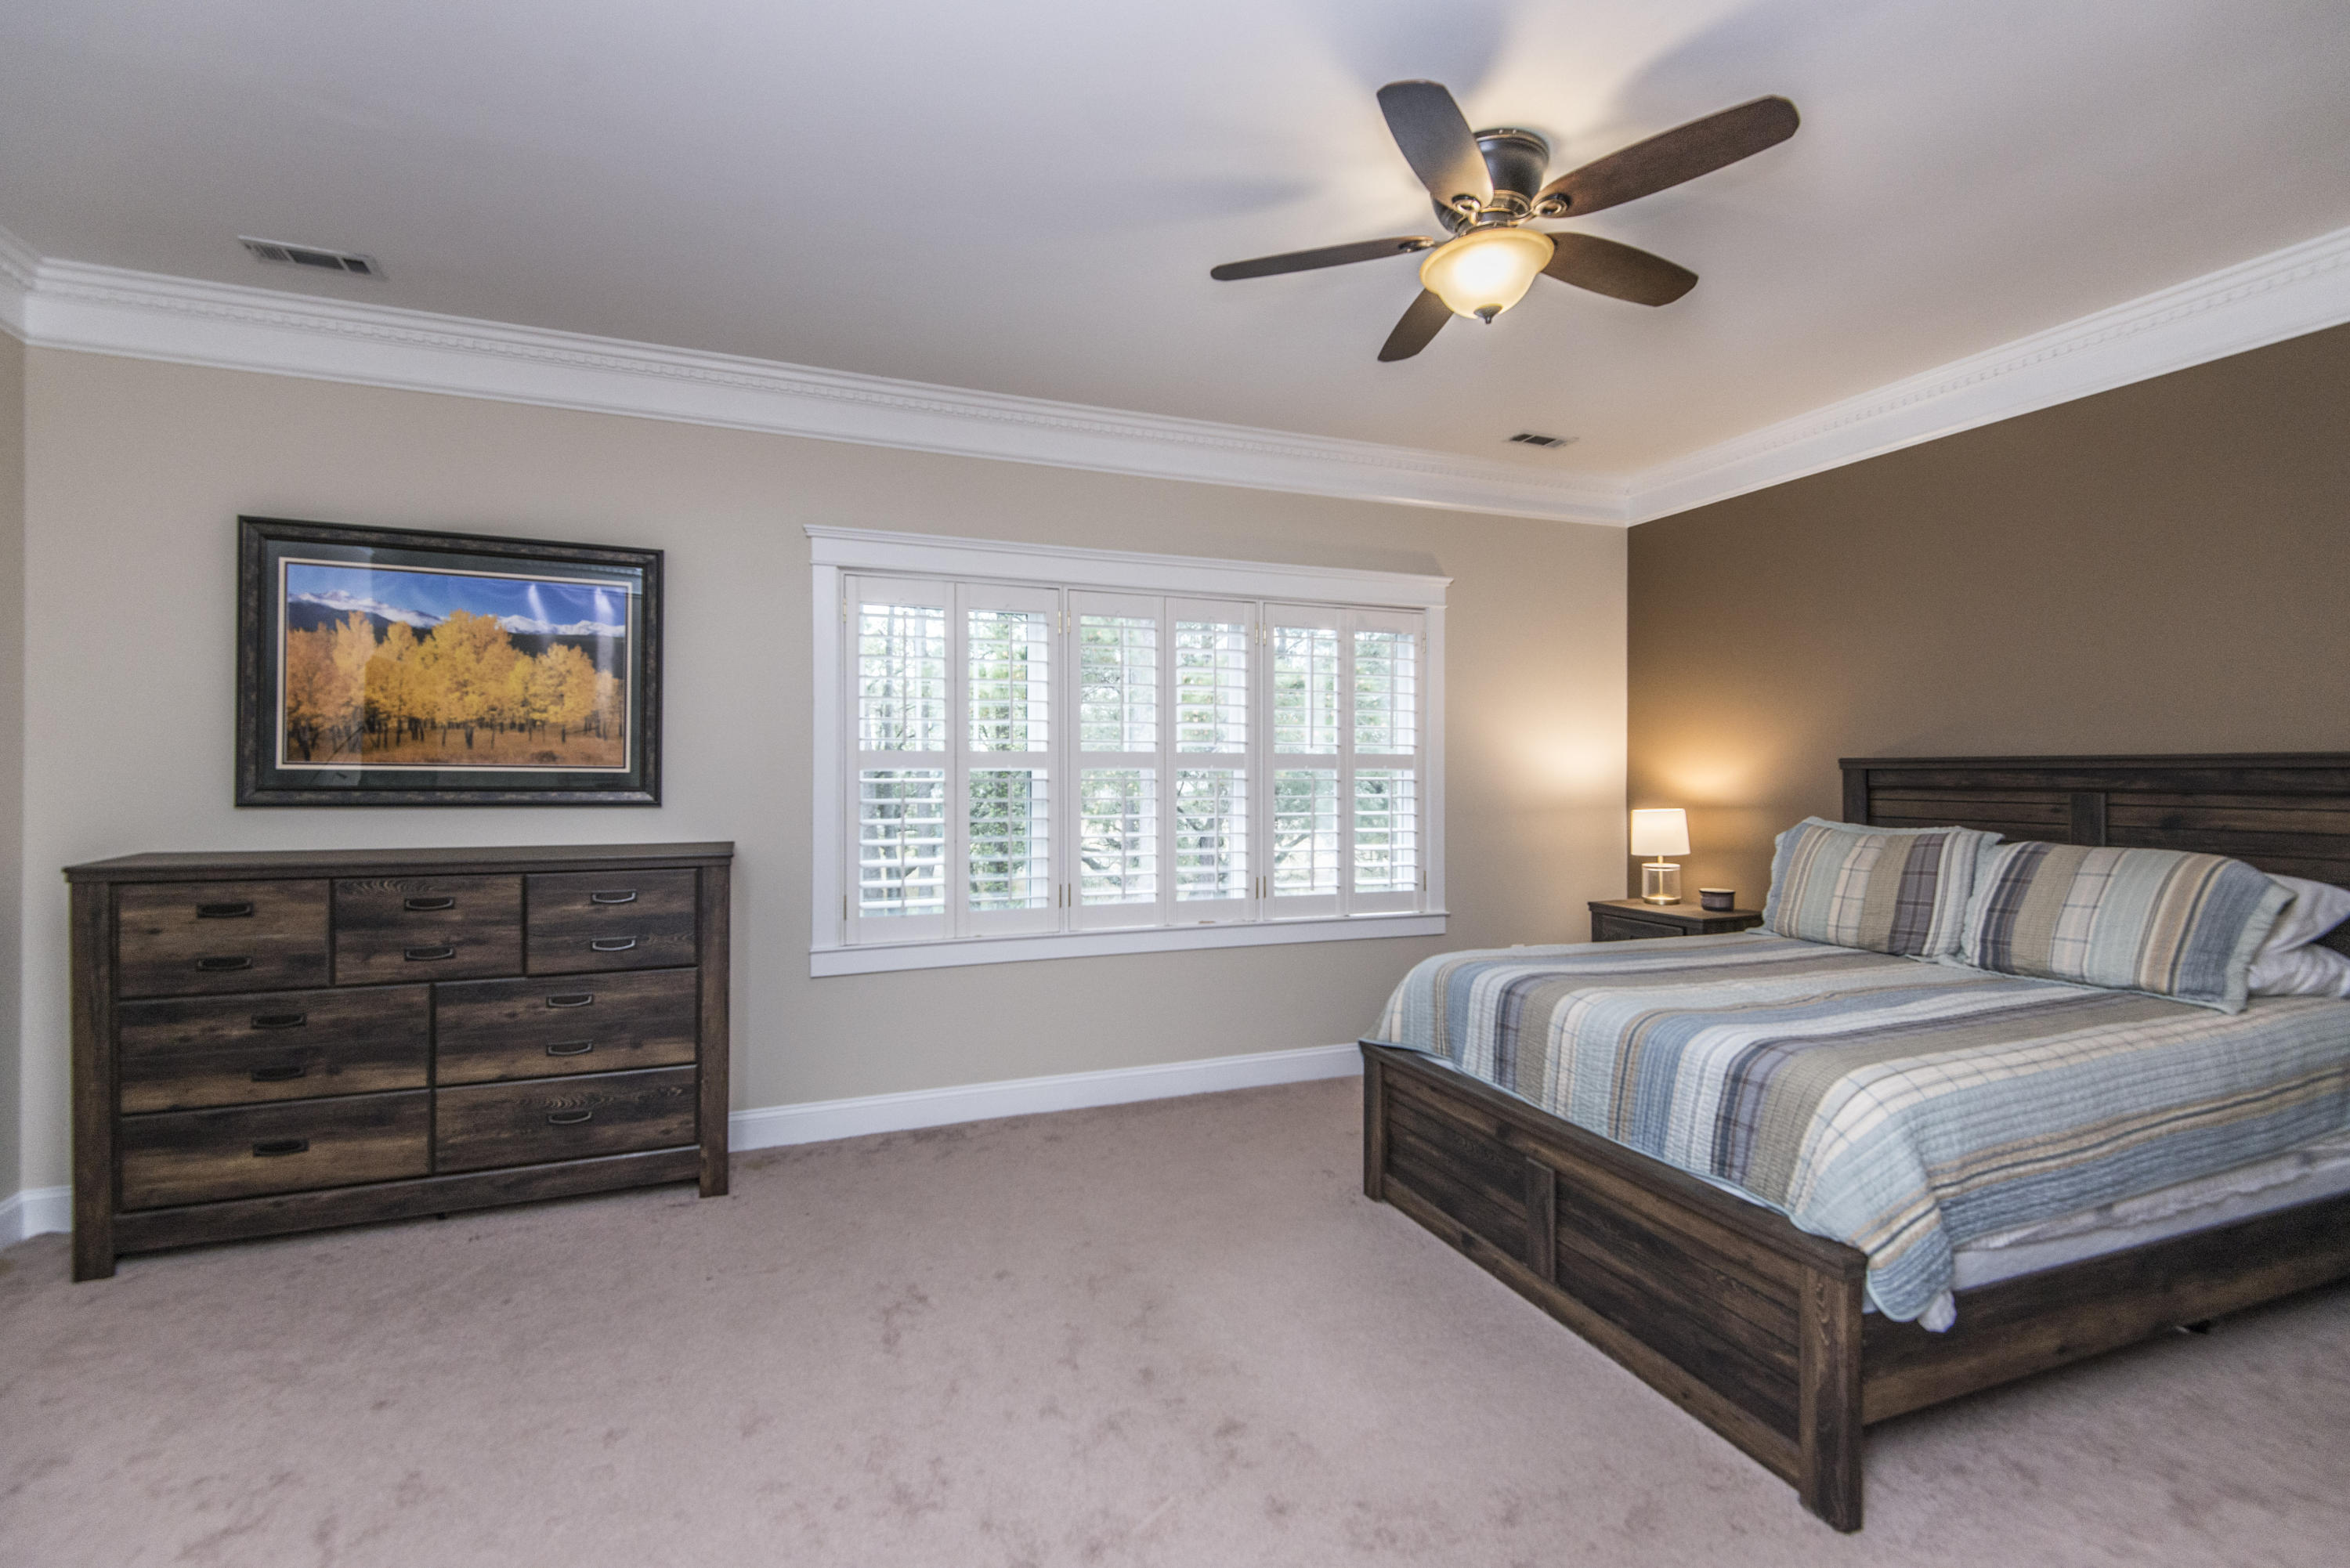 Etiwan Pointe Homes For Sale - 92 Salty Tide, Mount Pleasant, SC - 0